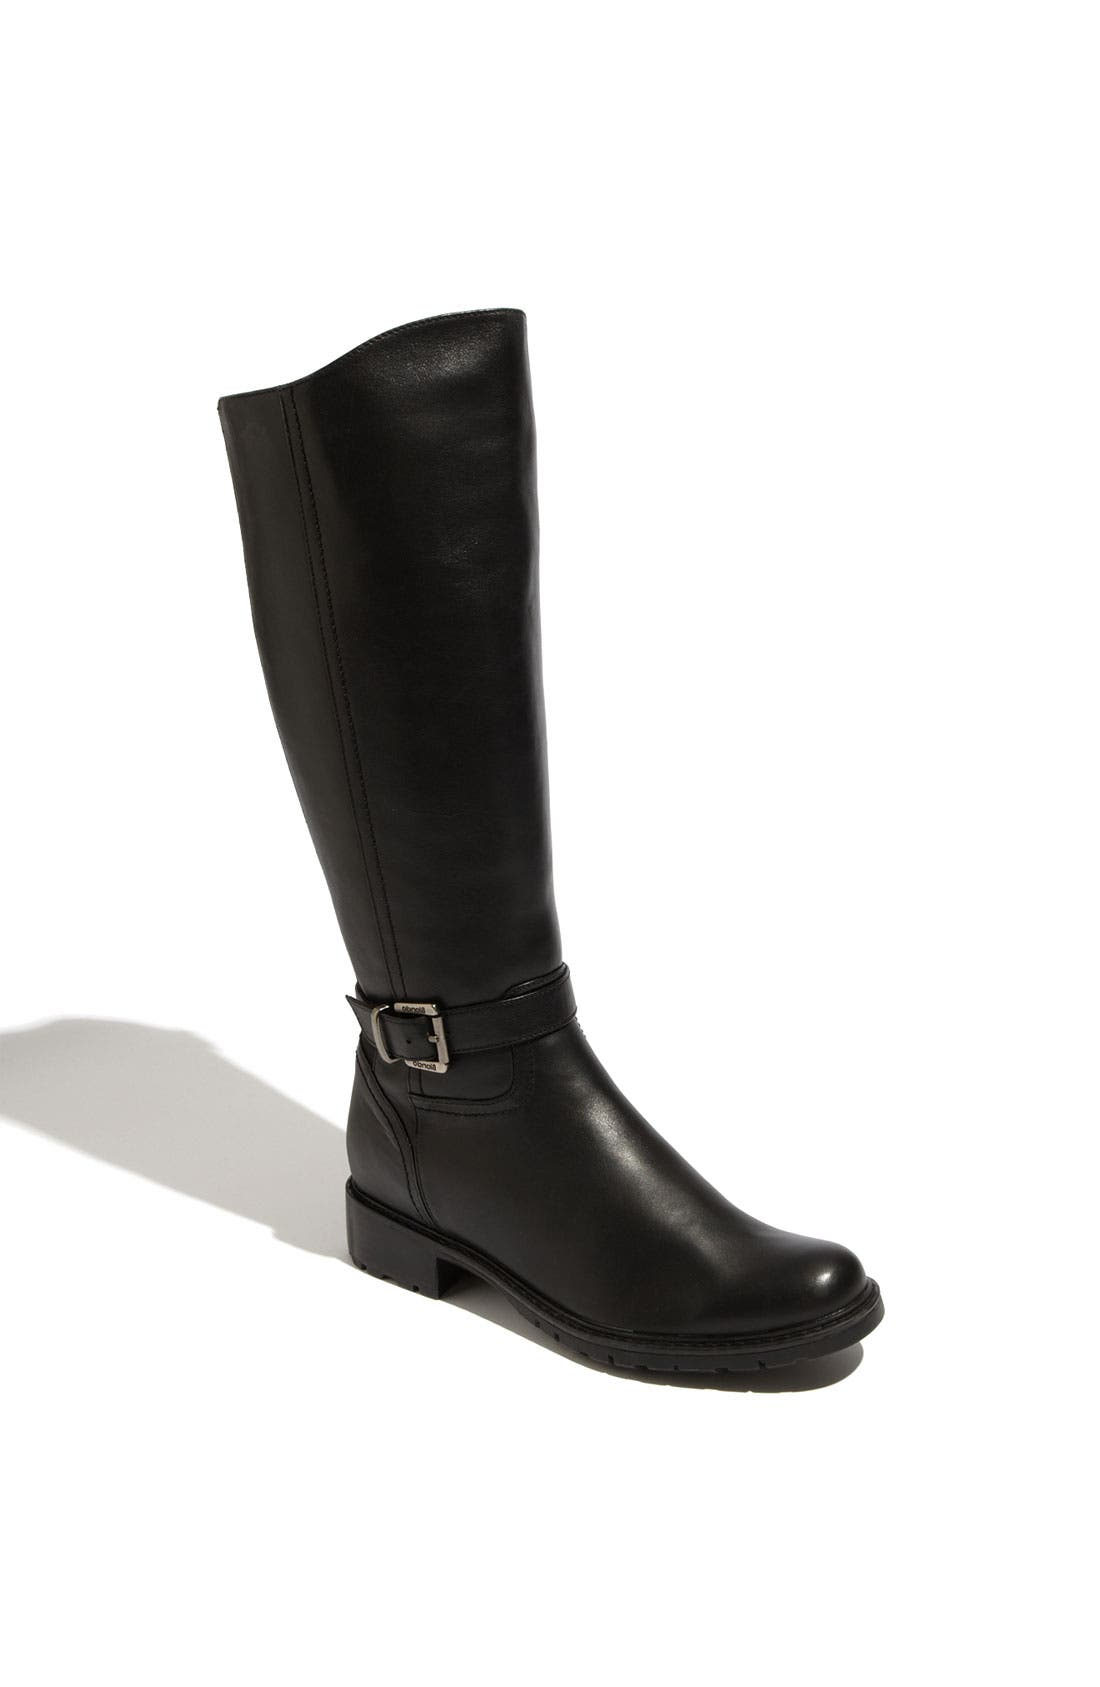 Main Image - Blondo 'Valente' Waterproof Boot